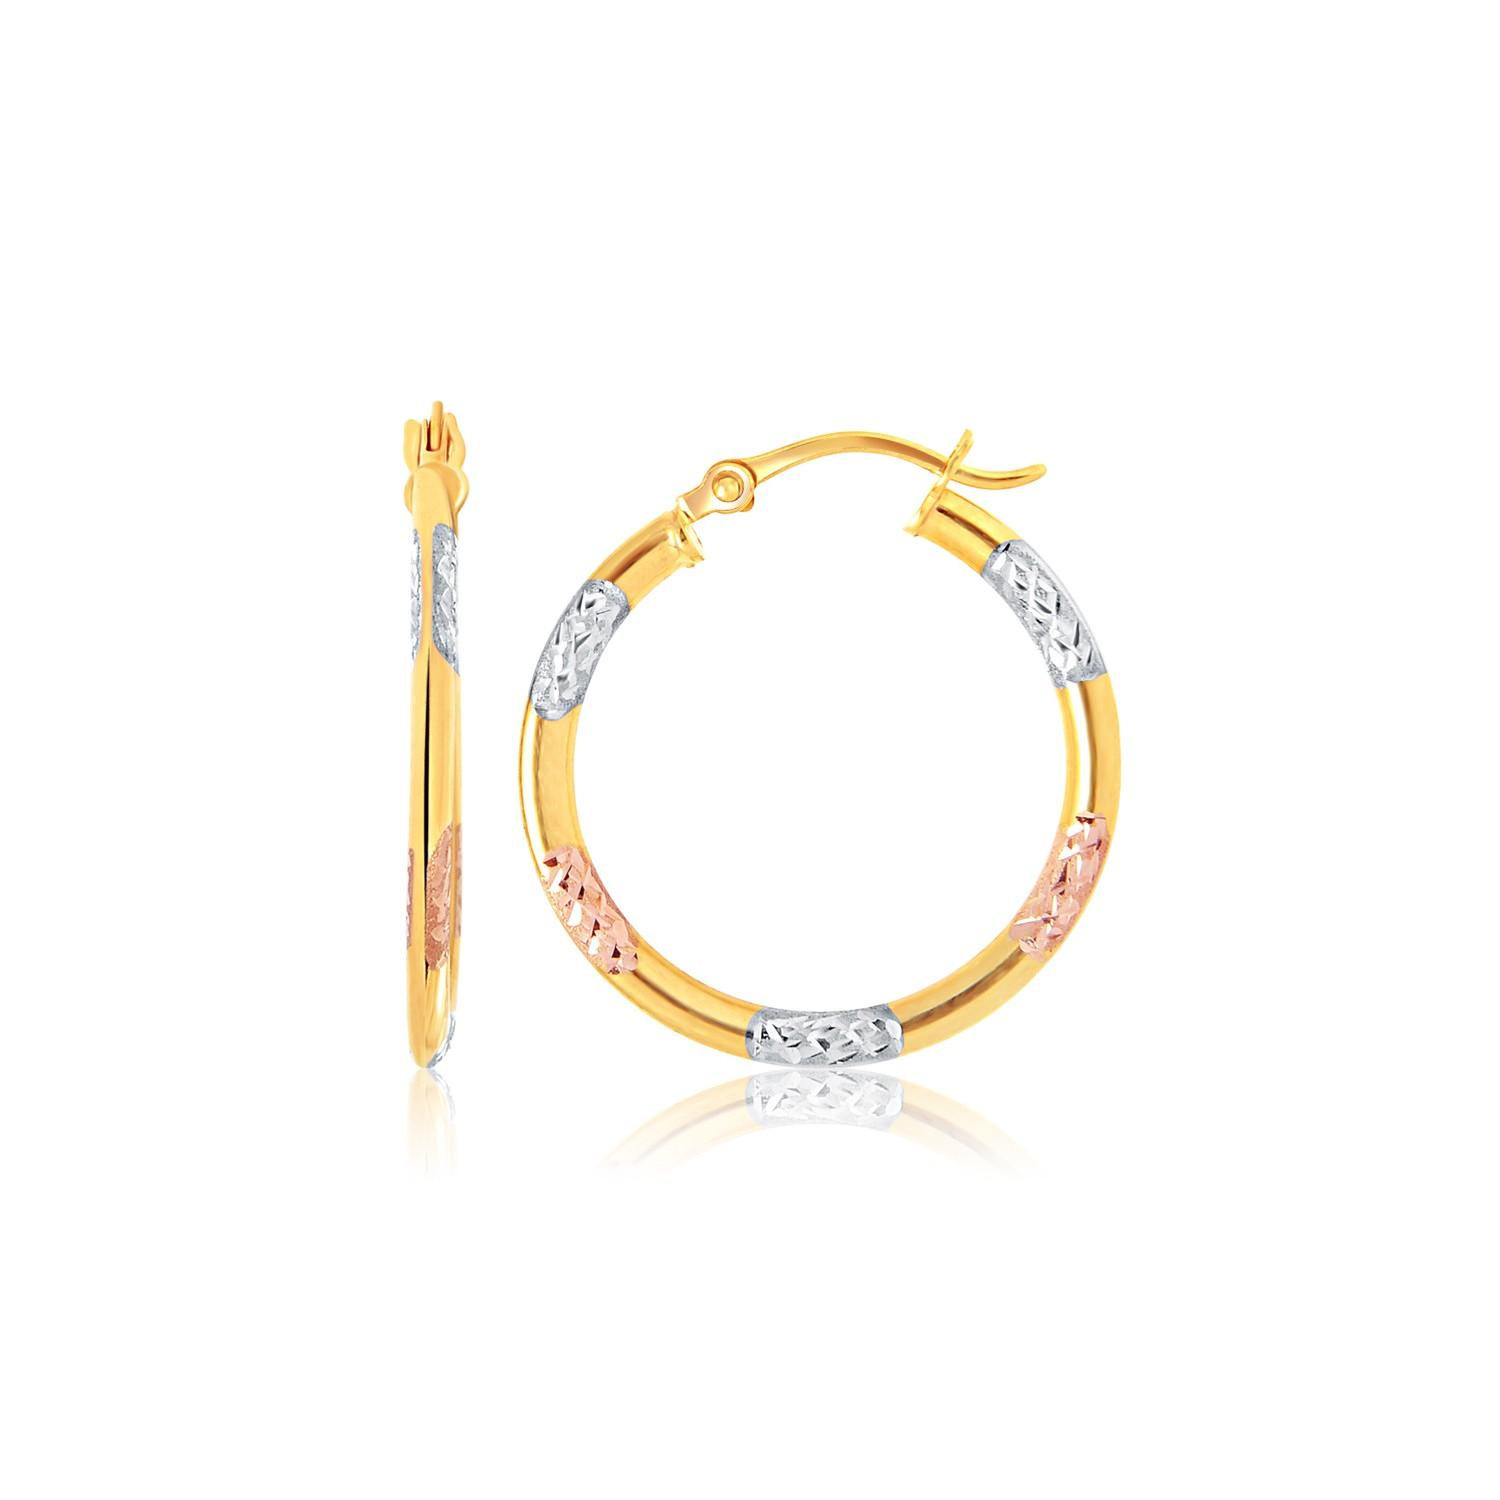 14k Tri-Color Gold Classic Hoop Earrings with Diamond Cut Details